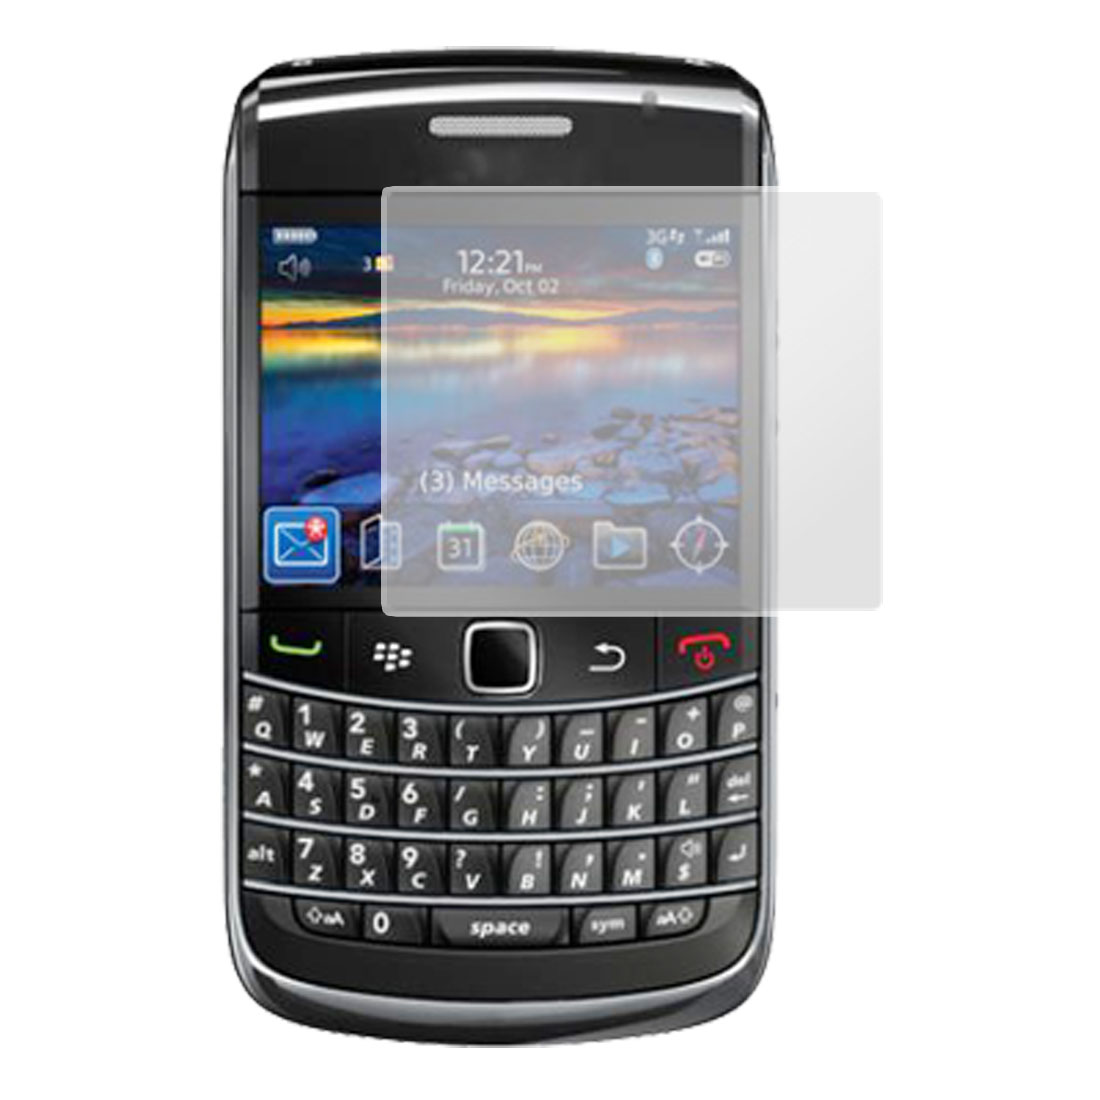 Cell Phone Screen Clear Protector for Blackberry 9700